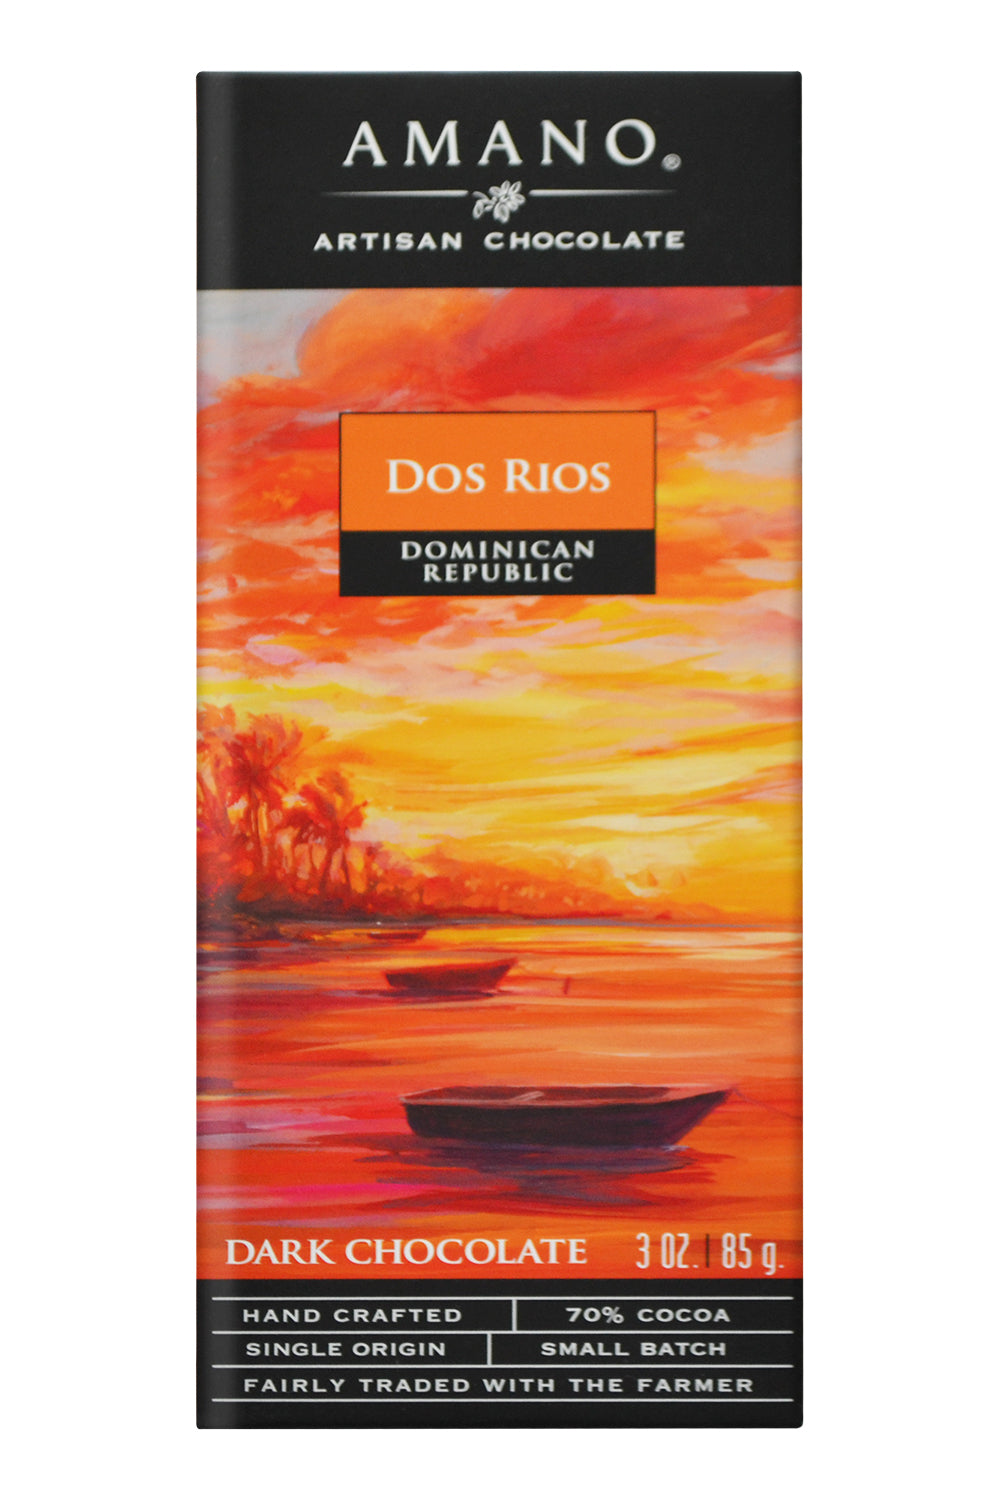 Amano Dark Chocolate - Dos Rios